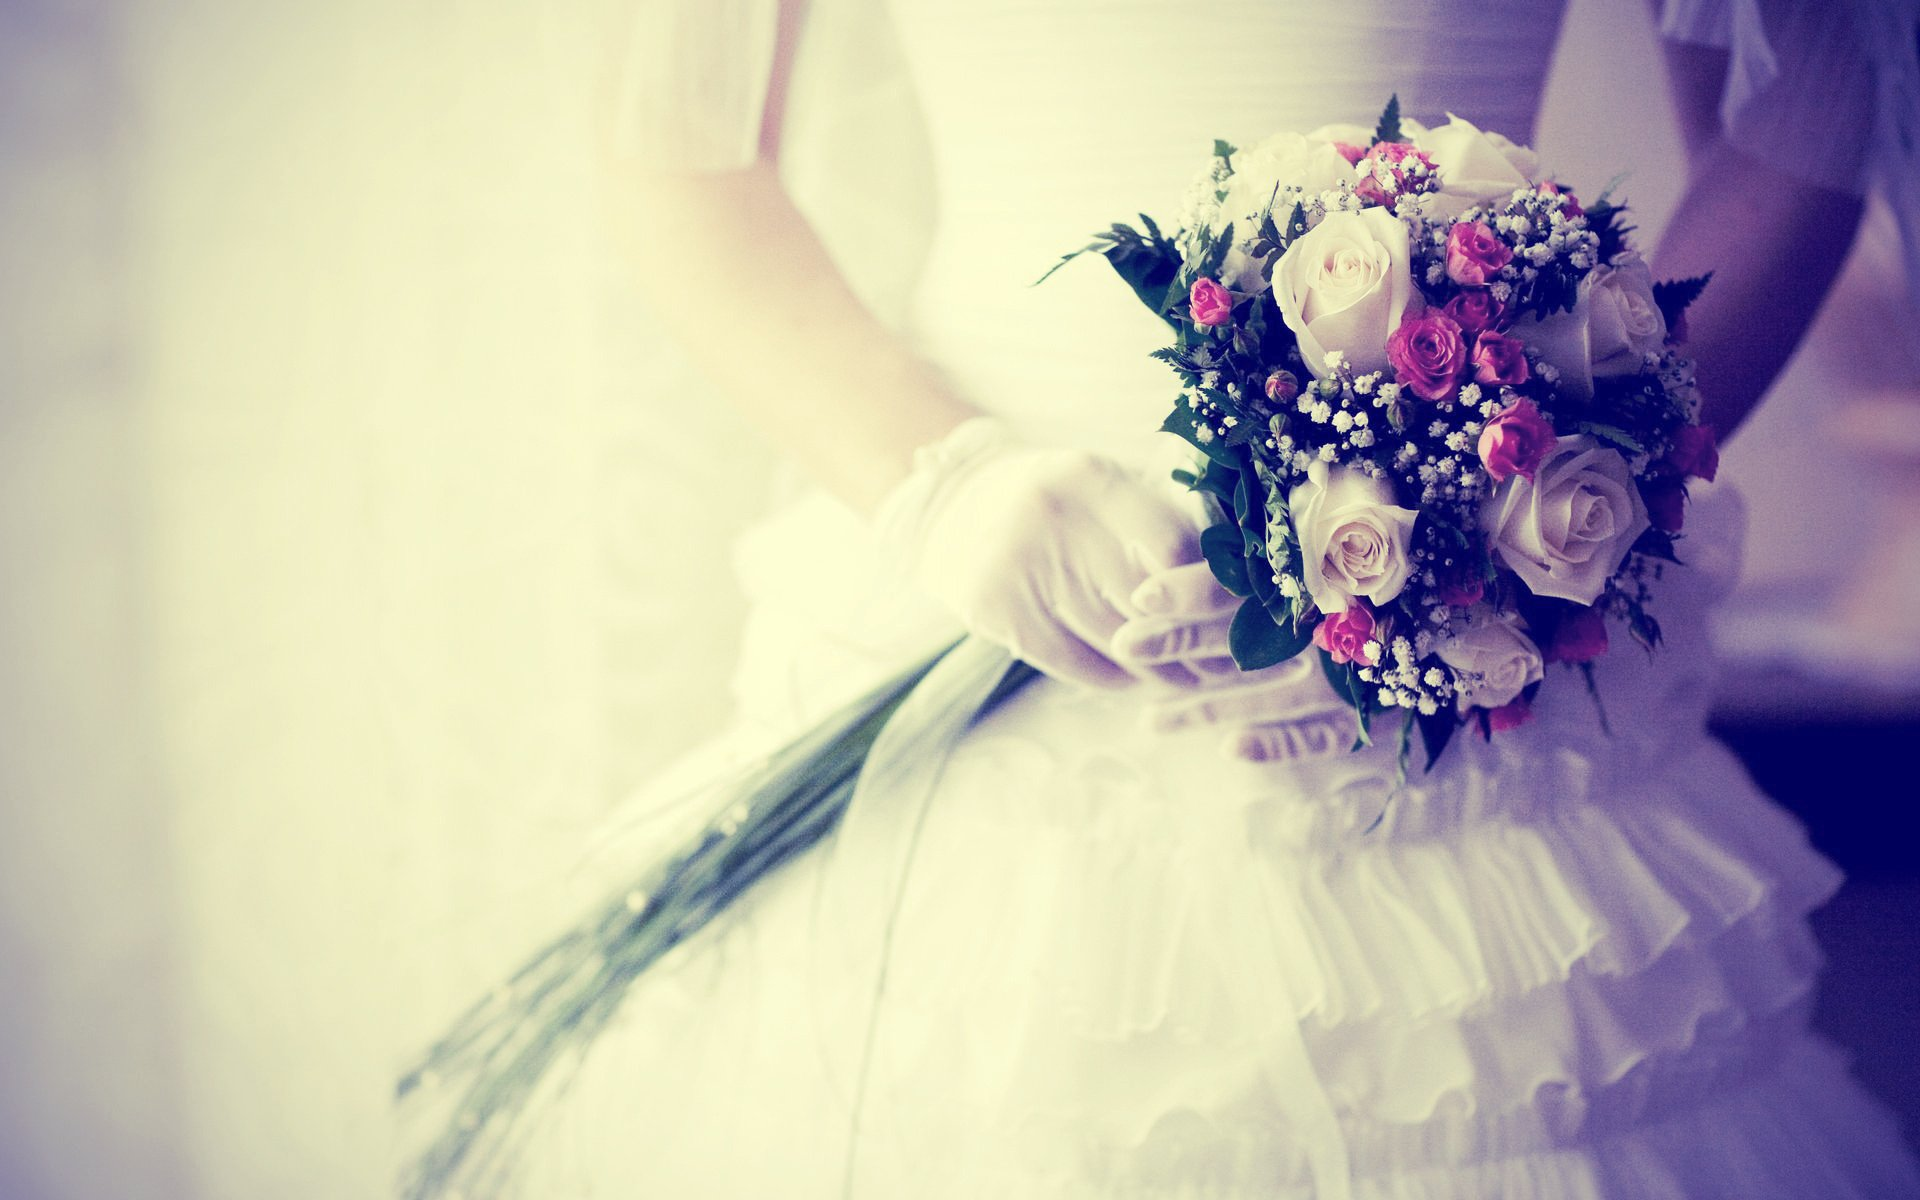 181 Wedding Dress HD Wallpapers | Background Images - Wallpaper Abyss